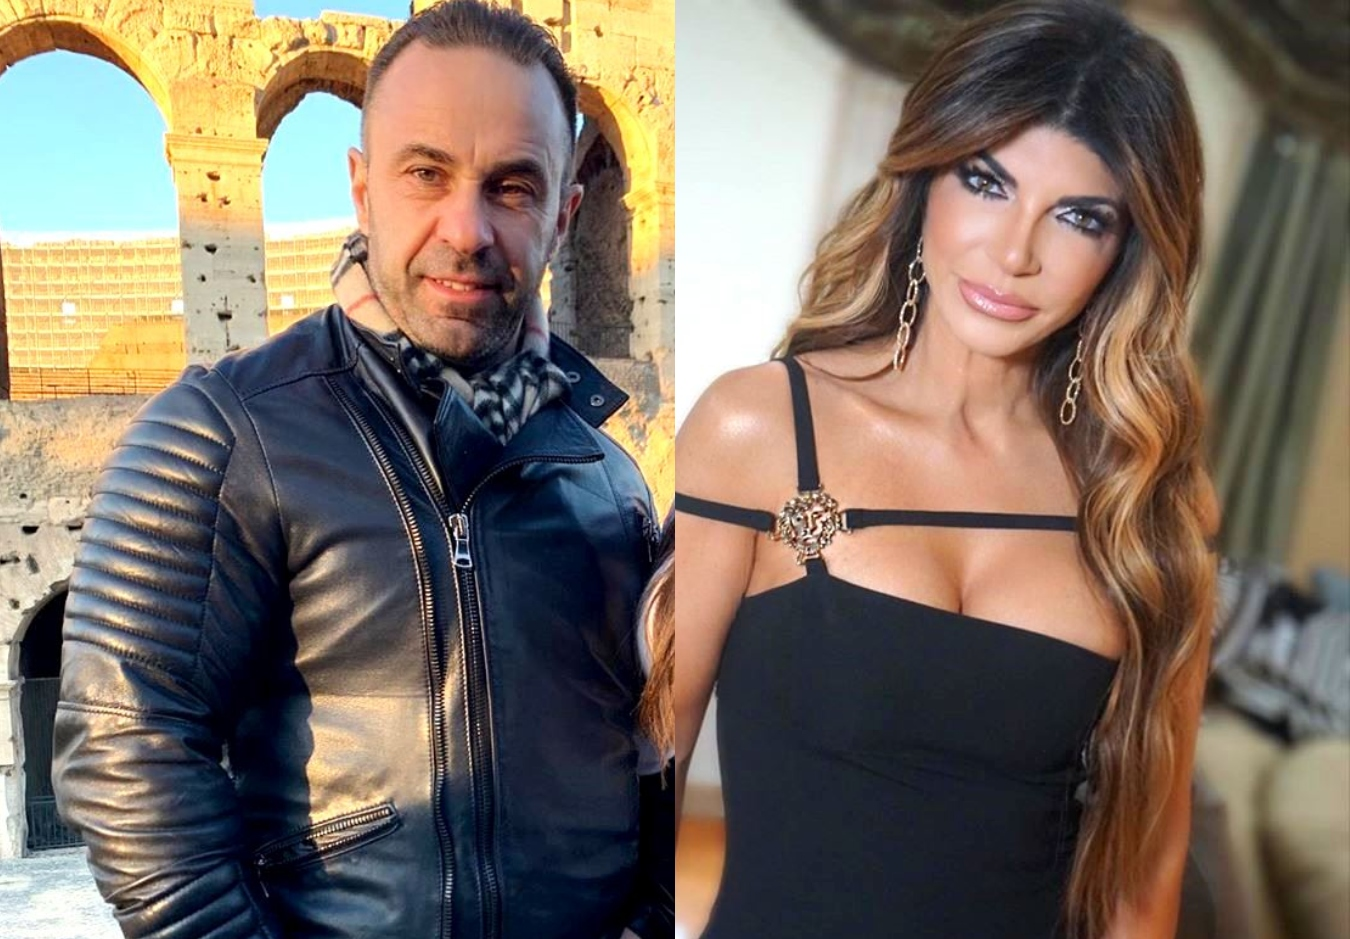 teresa-and-joe-giudice-plan-to-reunite-this-fall-and-not-in-italy-details